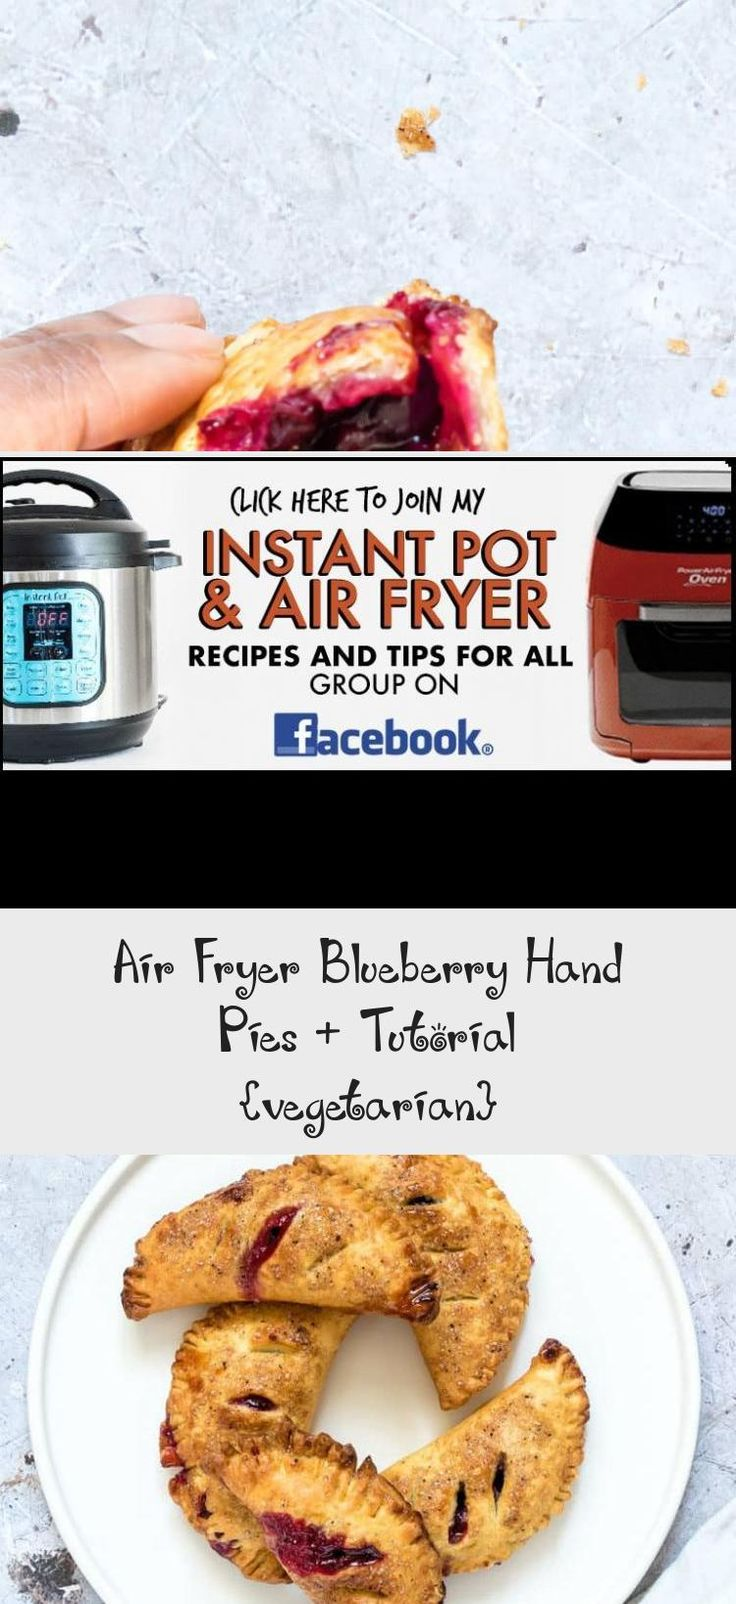 Air fryer blueberry hand pies are delectable adorable and